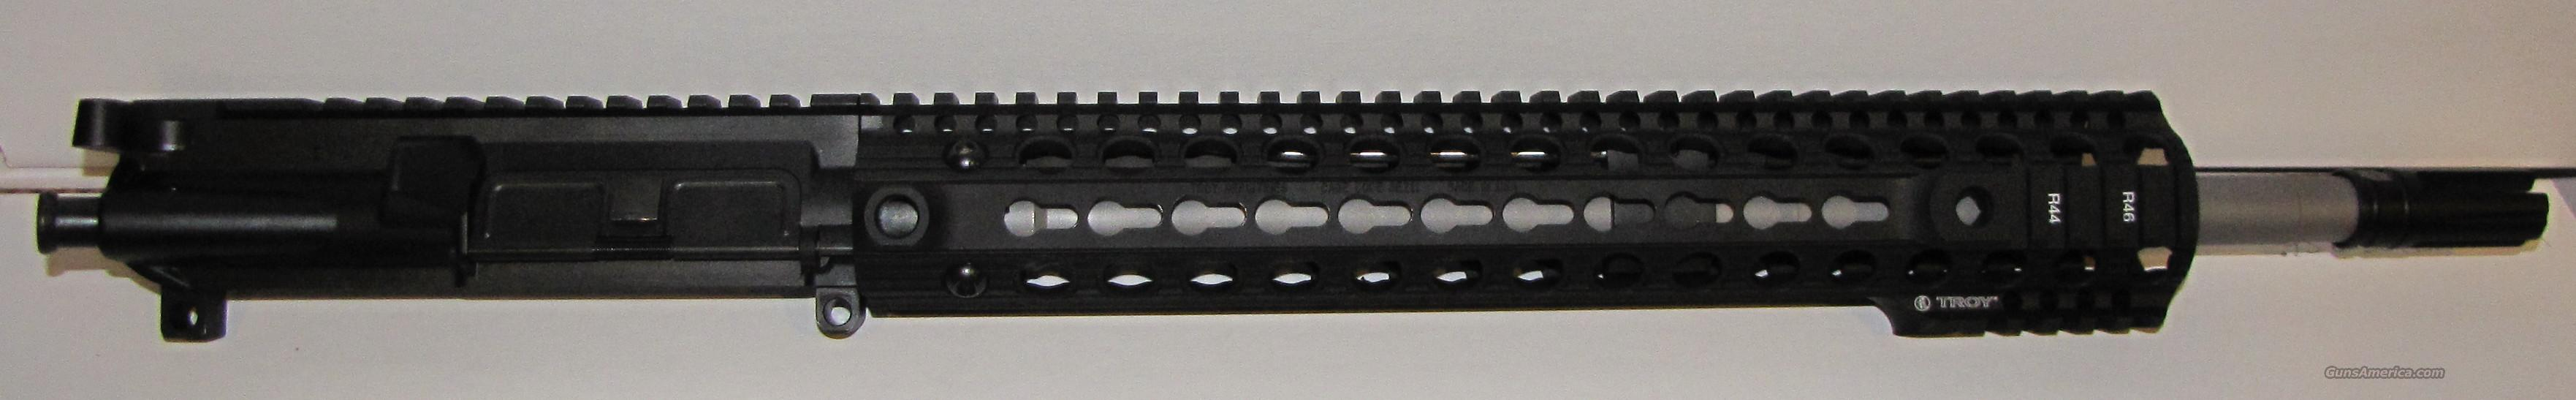 "B.T.A ""Battle Mod"" 16"" 300BLKOUT AR15 upper/Special FREE SHIP & NO CC FEES  Non-Guns > Gun Parts > M16-AR15 > Upper Only"